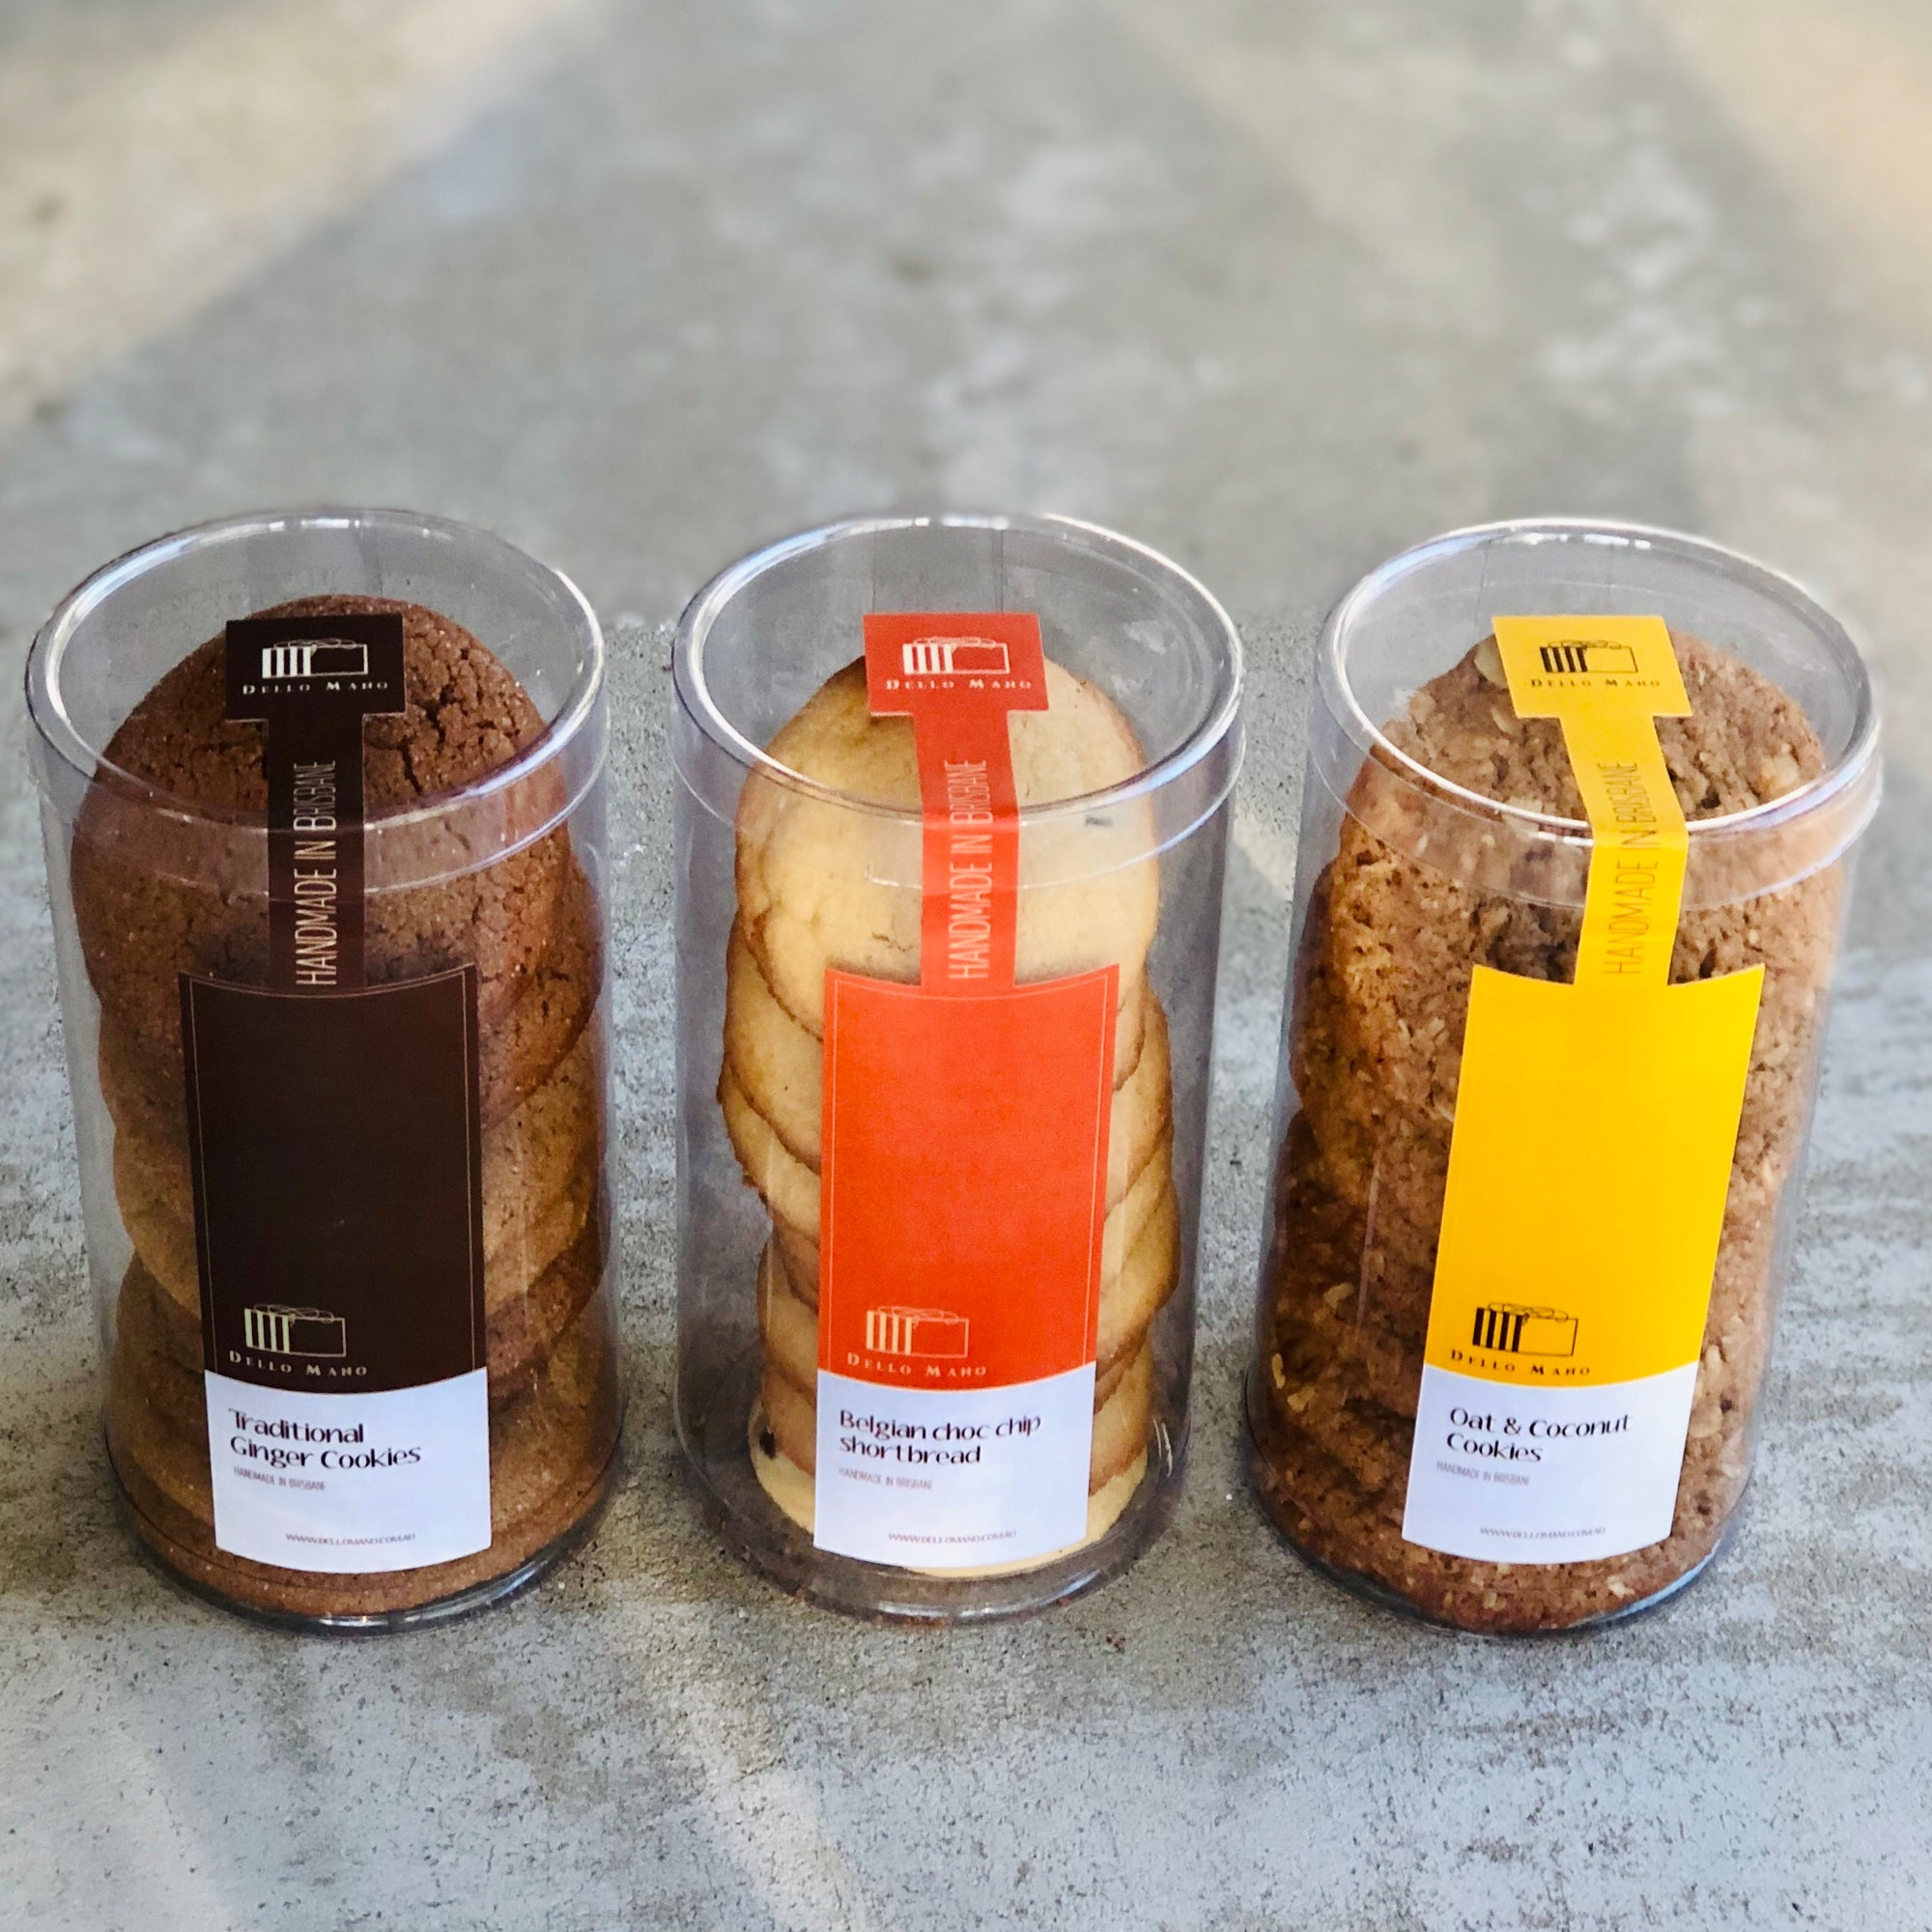 Three tubes of cookies each with different coloured labels